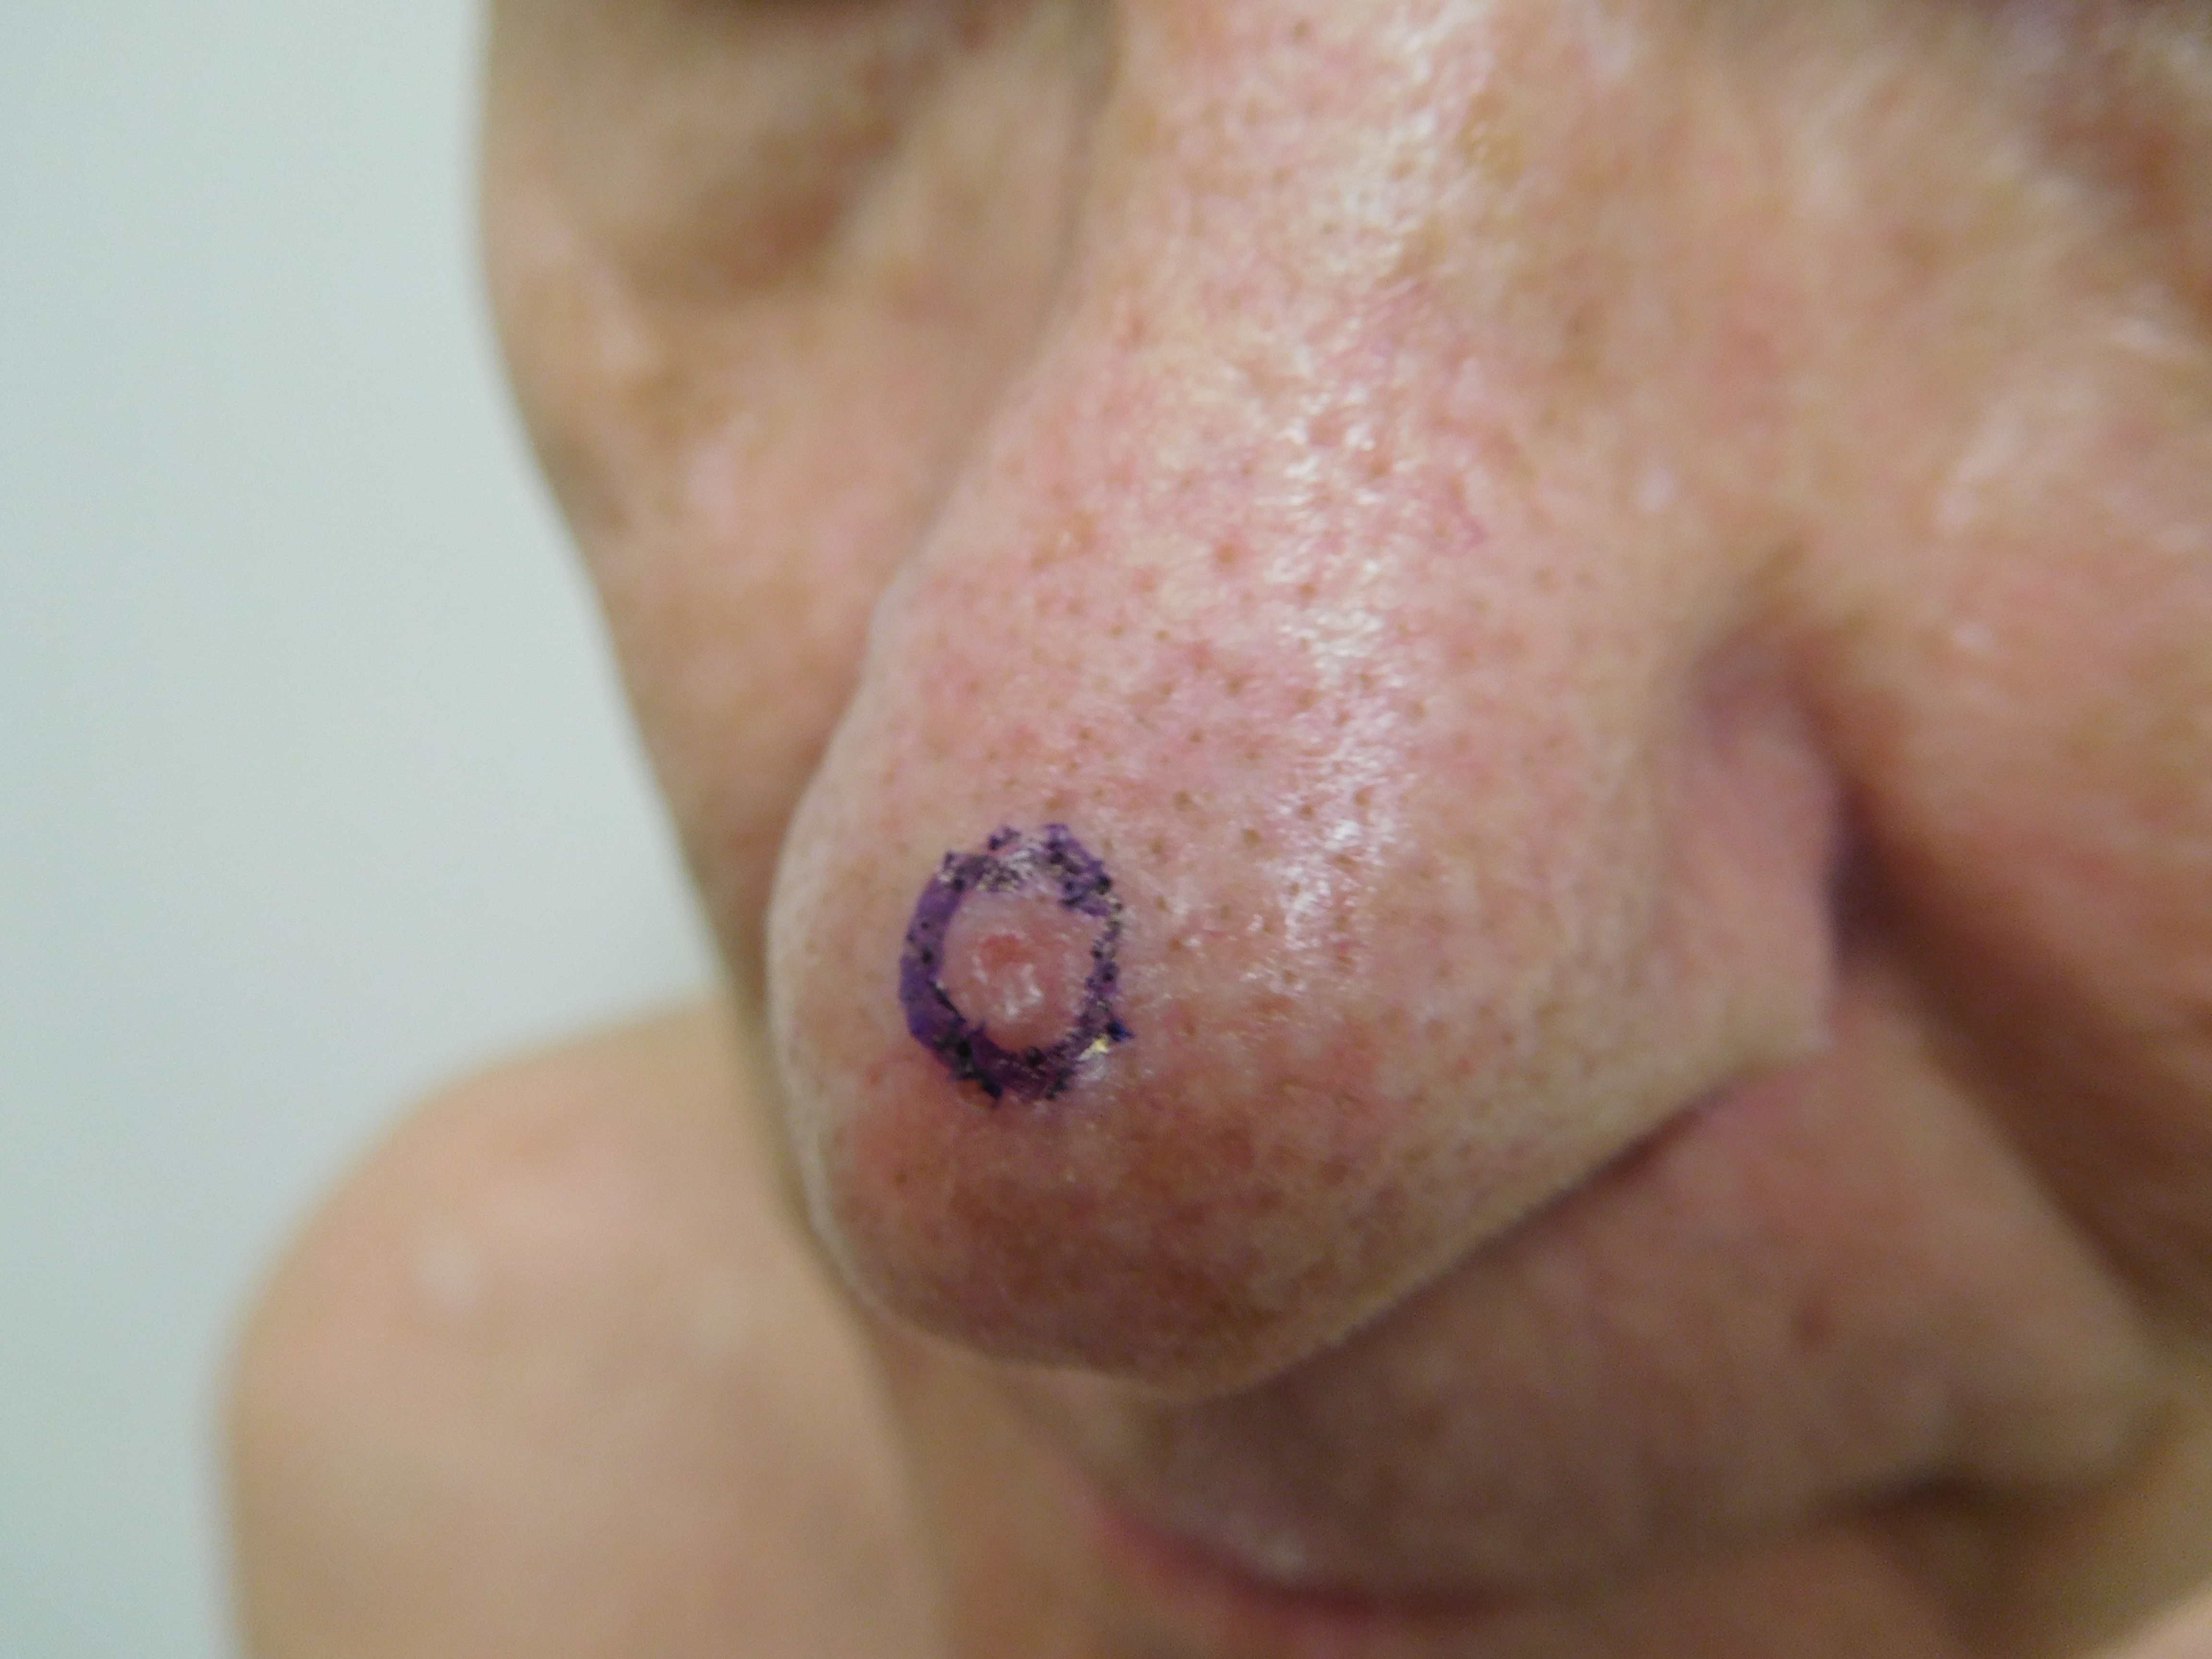 Cureus Red Dot Basal Cell Carcinoma Report Of Cases And Review Of This Unique Presentation Of Basal Cell Carcinoma